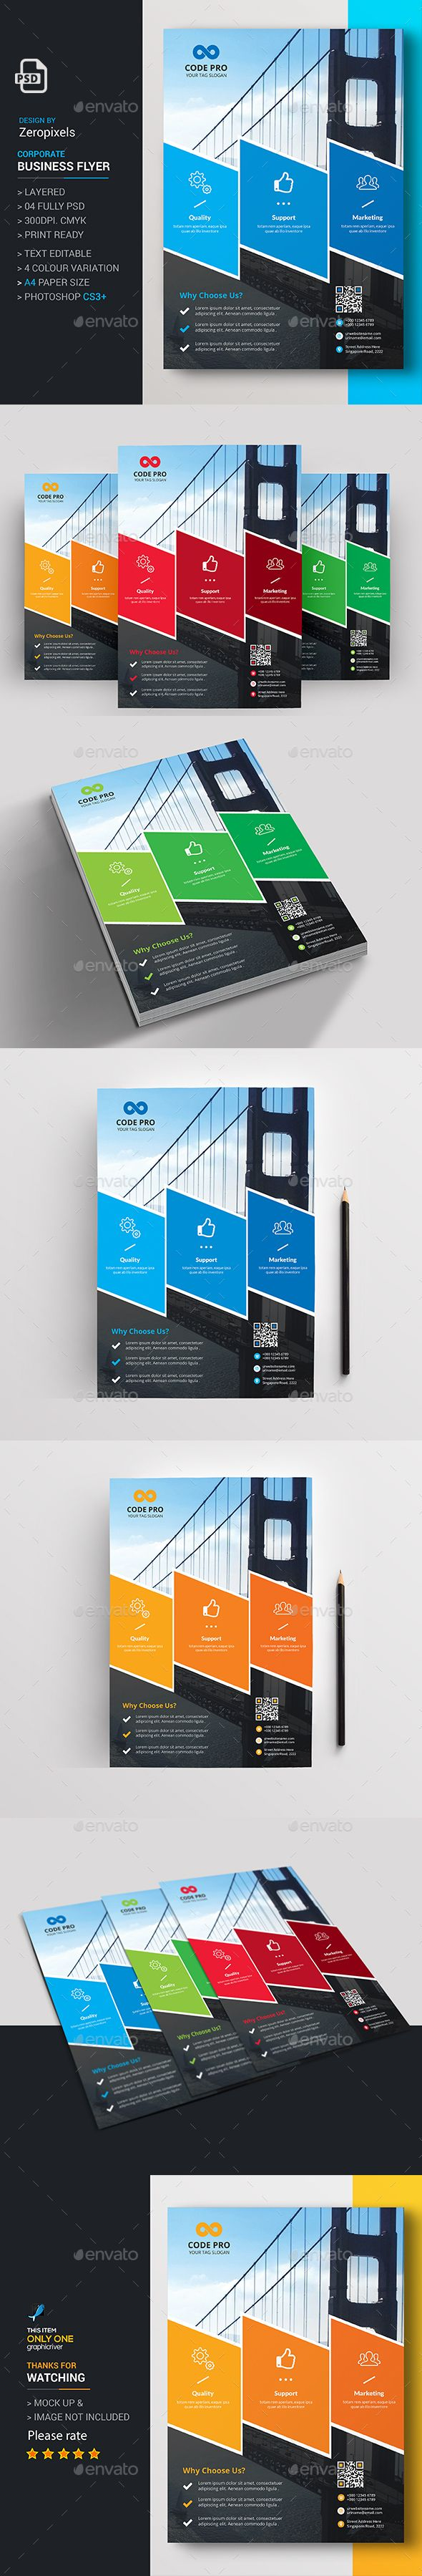 Corporate business flyer design flyer template psd download here corporate business flyer design flyer template psd download here http accmission Images